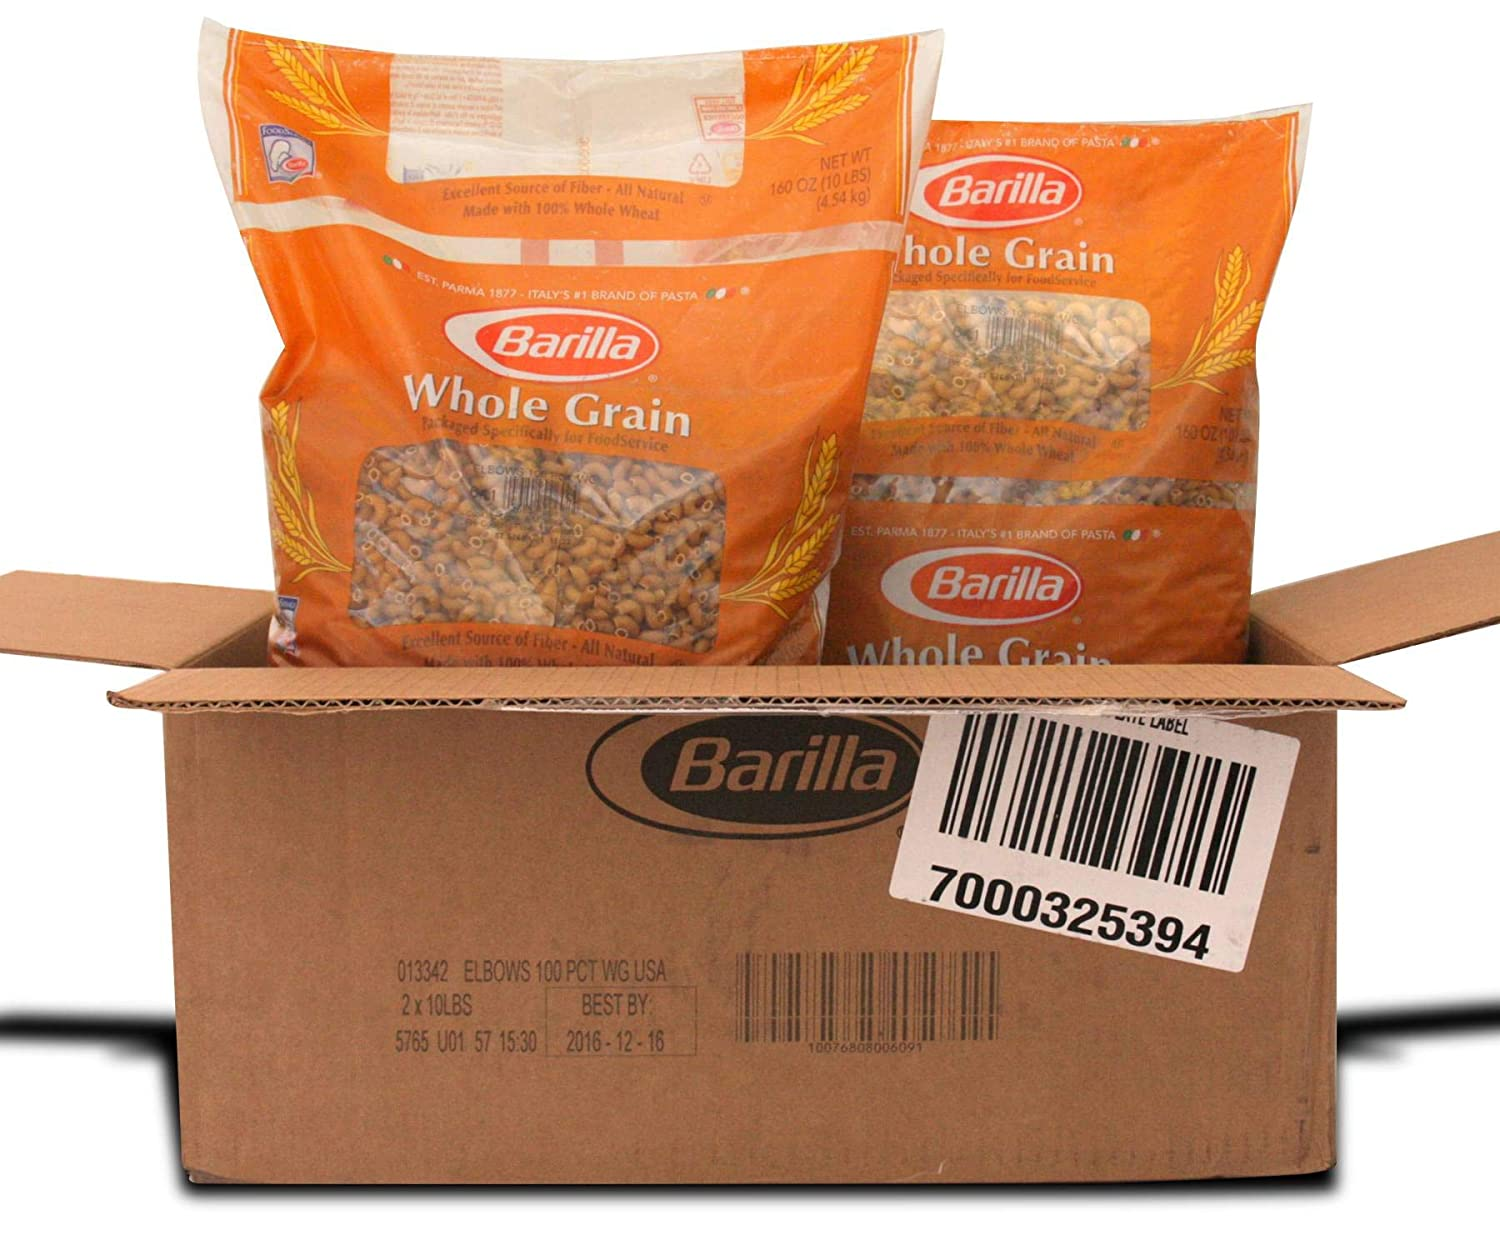 Barilla Sales Elbows 100 Percent Clearance SALE Limited time Whole Grain 160 2 per Ounce Pasta --